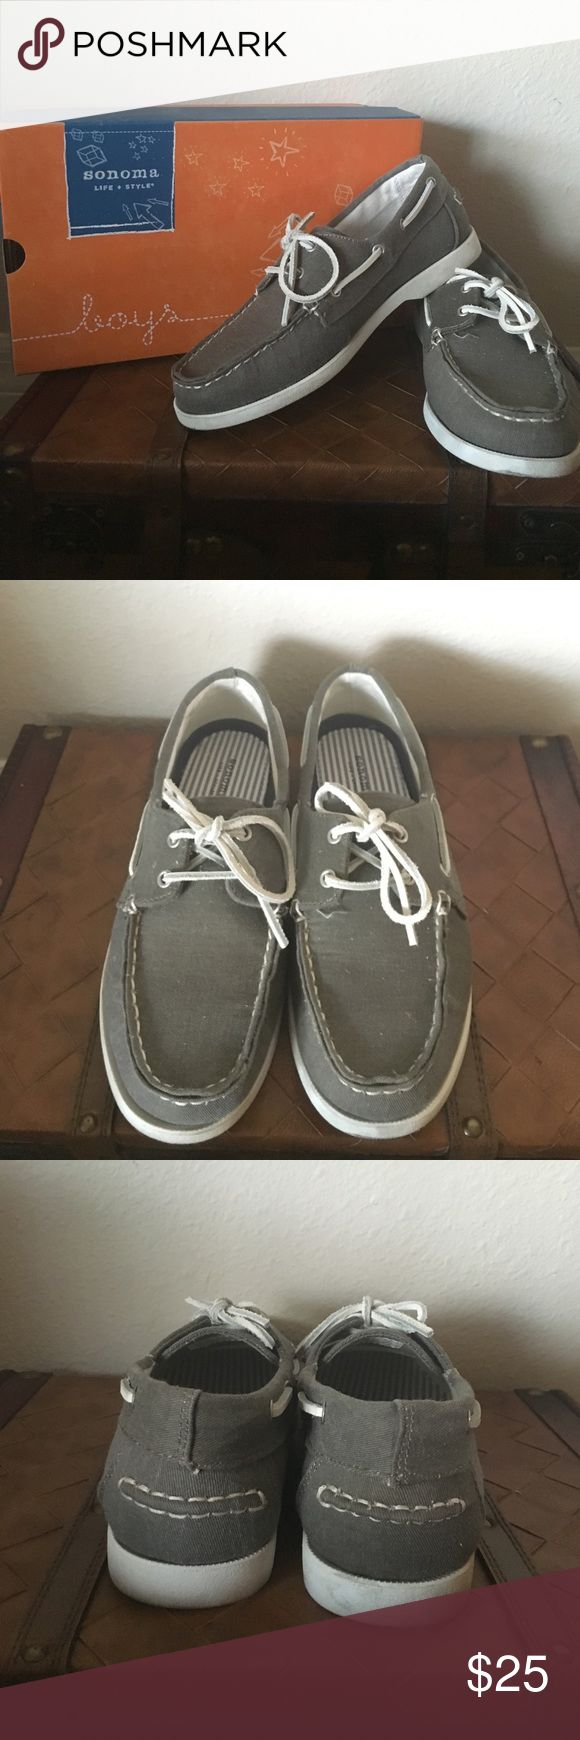 Boys Boat Shoes Like New! Boys boat shoes were purchased at Kohls. Hardly worn, no thread unraveling. Denim like fabric (cliff grey). Easy to clean. Size 5 Sonoma Shoes